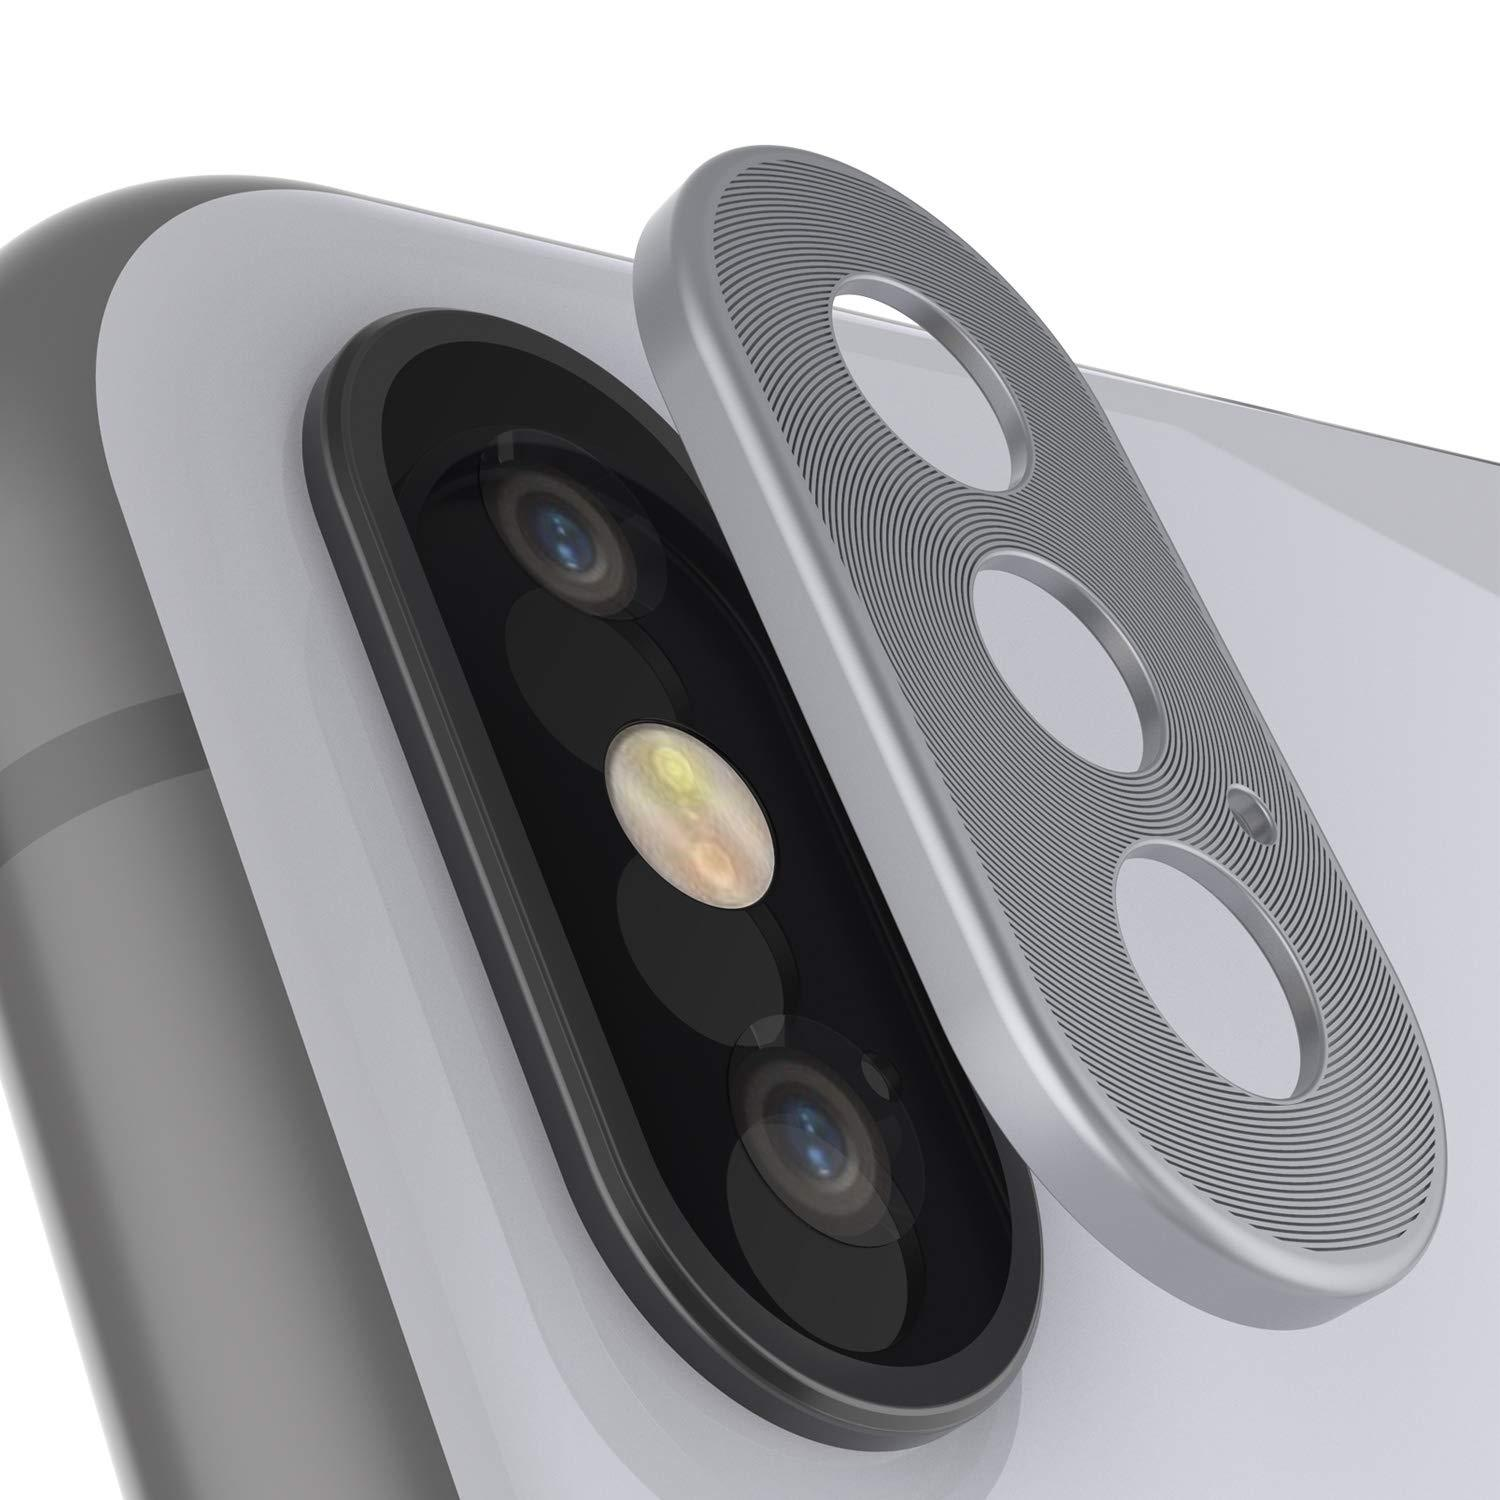 Punkcase iPhone XS Camera Protector Ring [Silver]